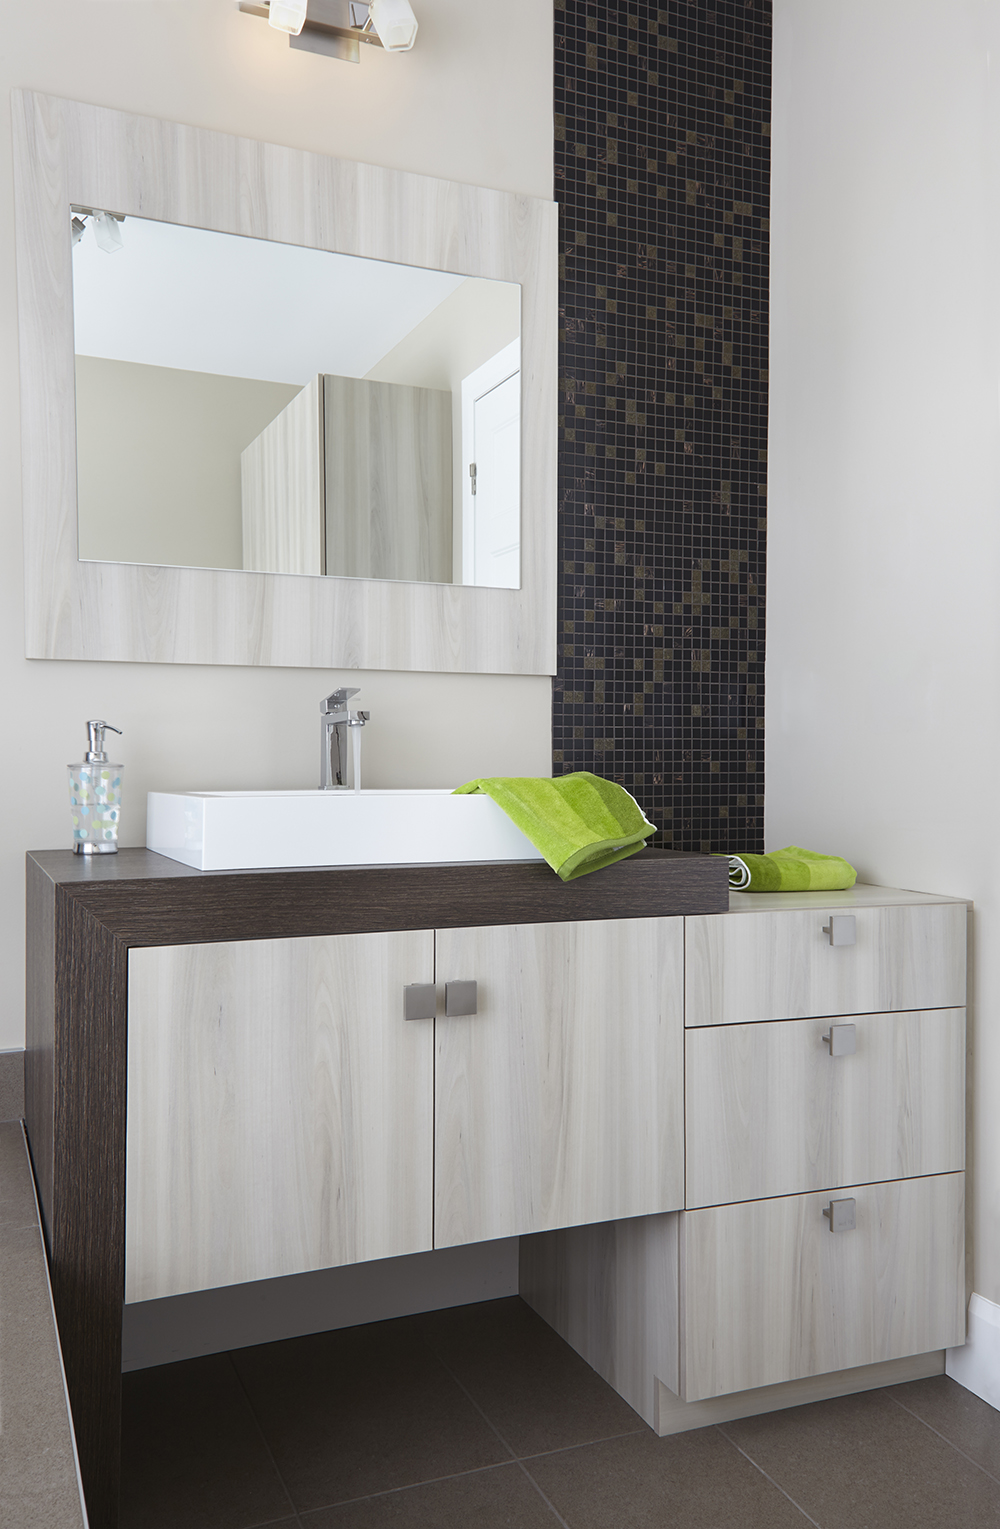 armoires de salle de bains moderne vanit en m lamine. Black Bedroom Furniture Sets. Home Design Ideas